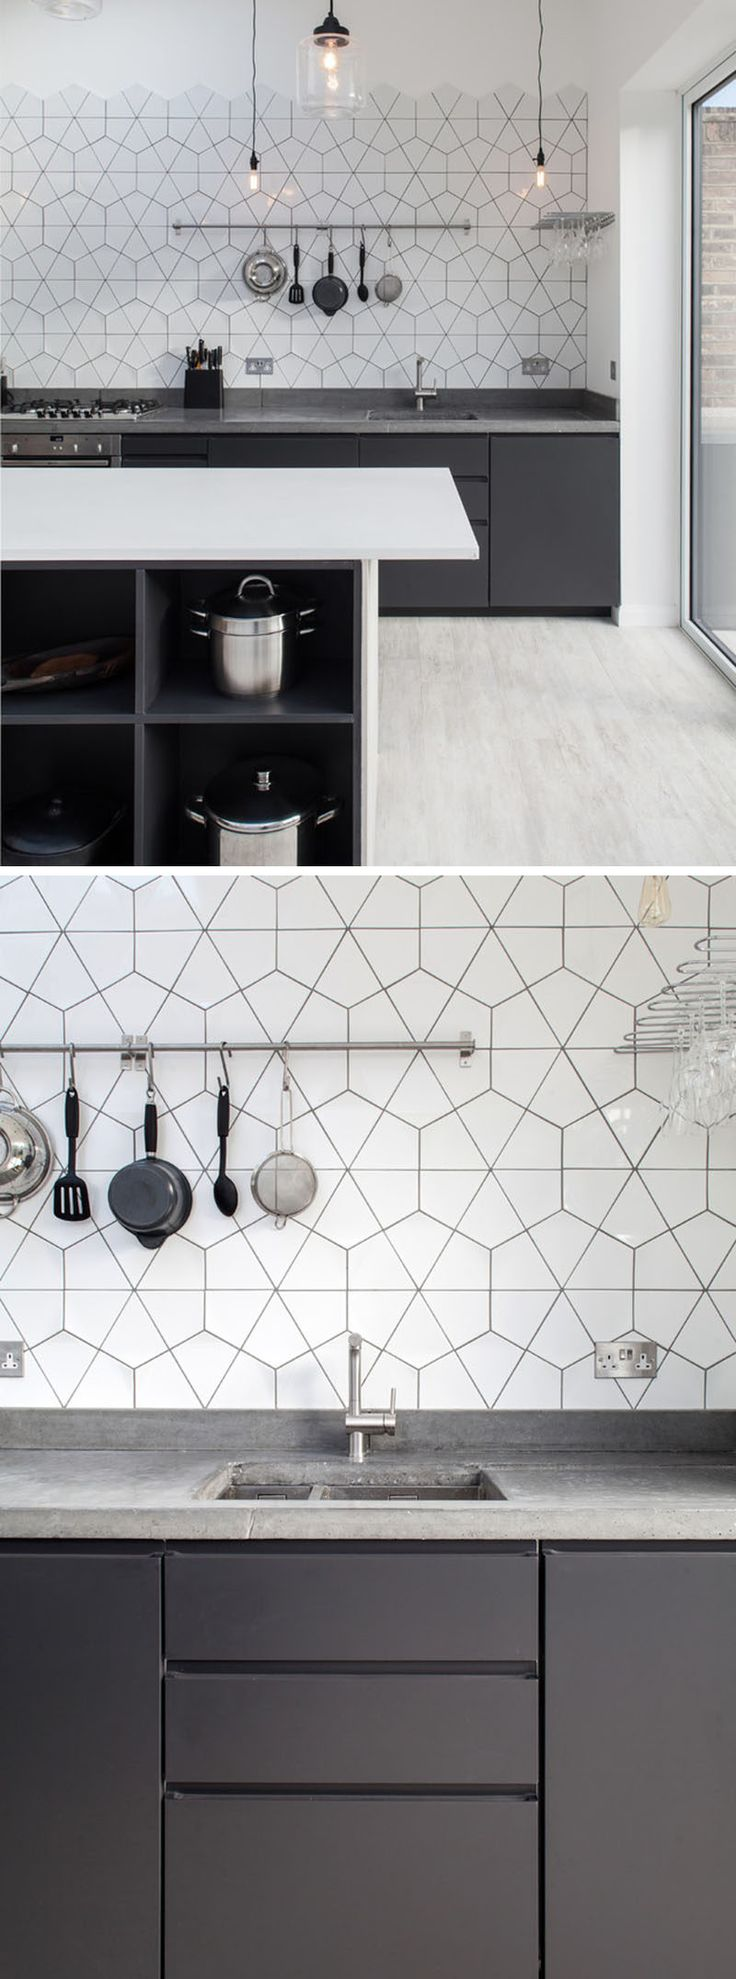 9 Inspirational Pictures Of Kitchens With Geometric Tiles // The white tiles and dark grout are in keeping with the rest of the color scheme in this concrete, grey, and white kitchen.